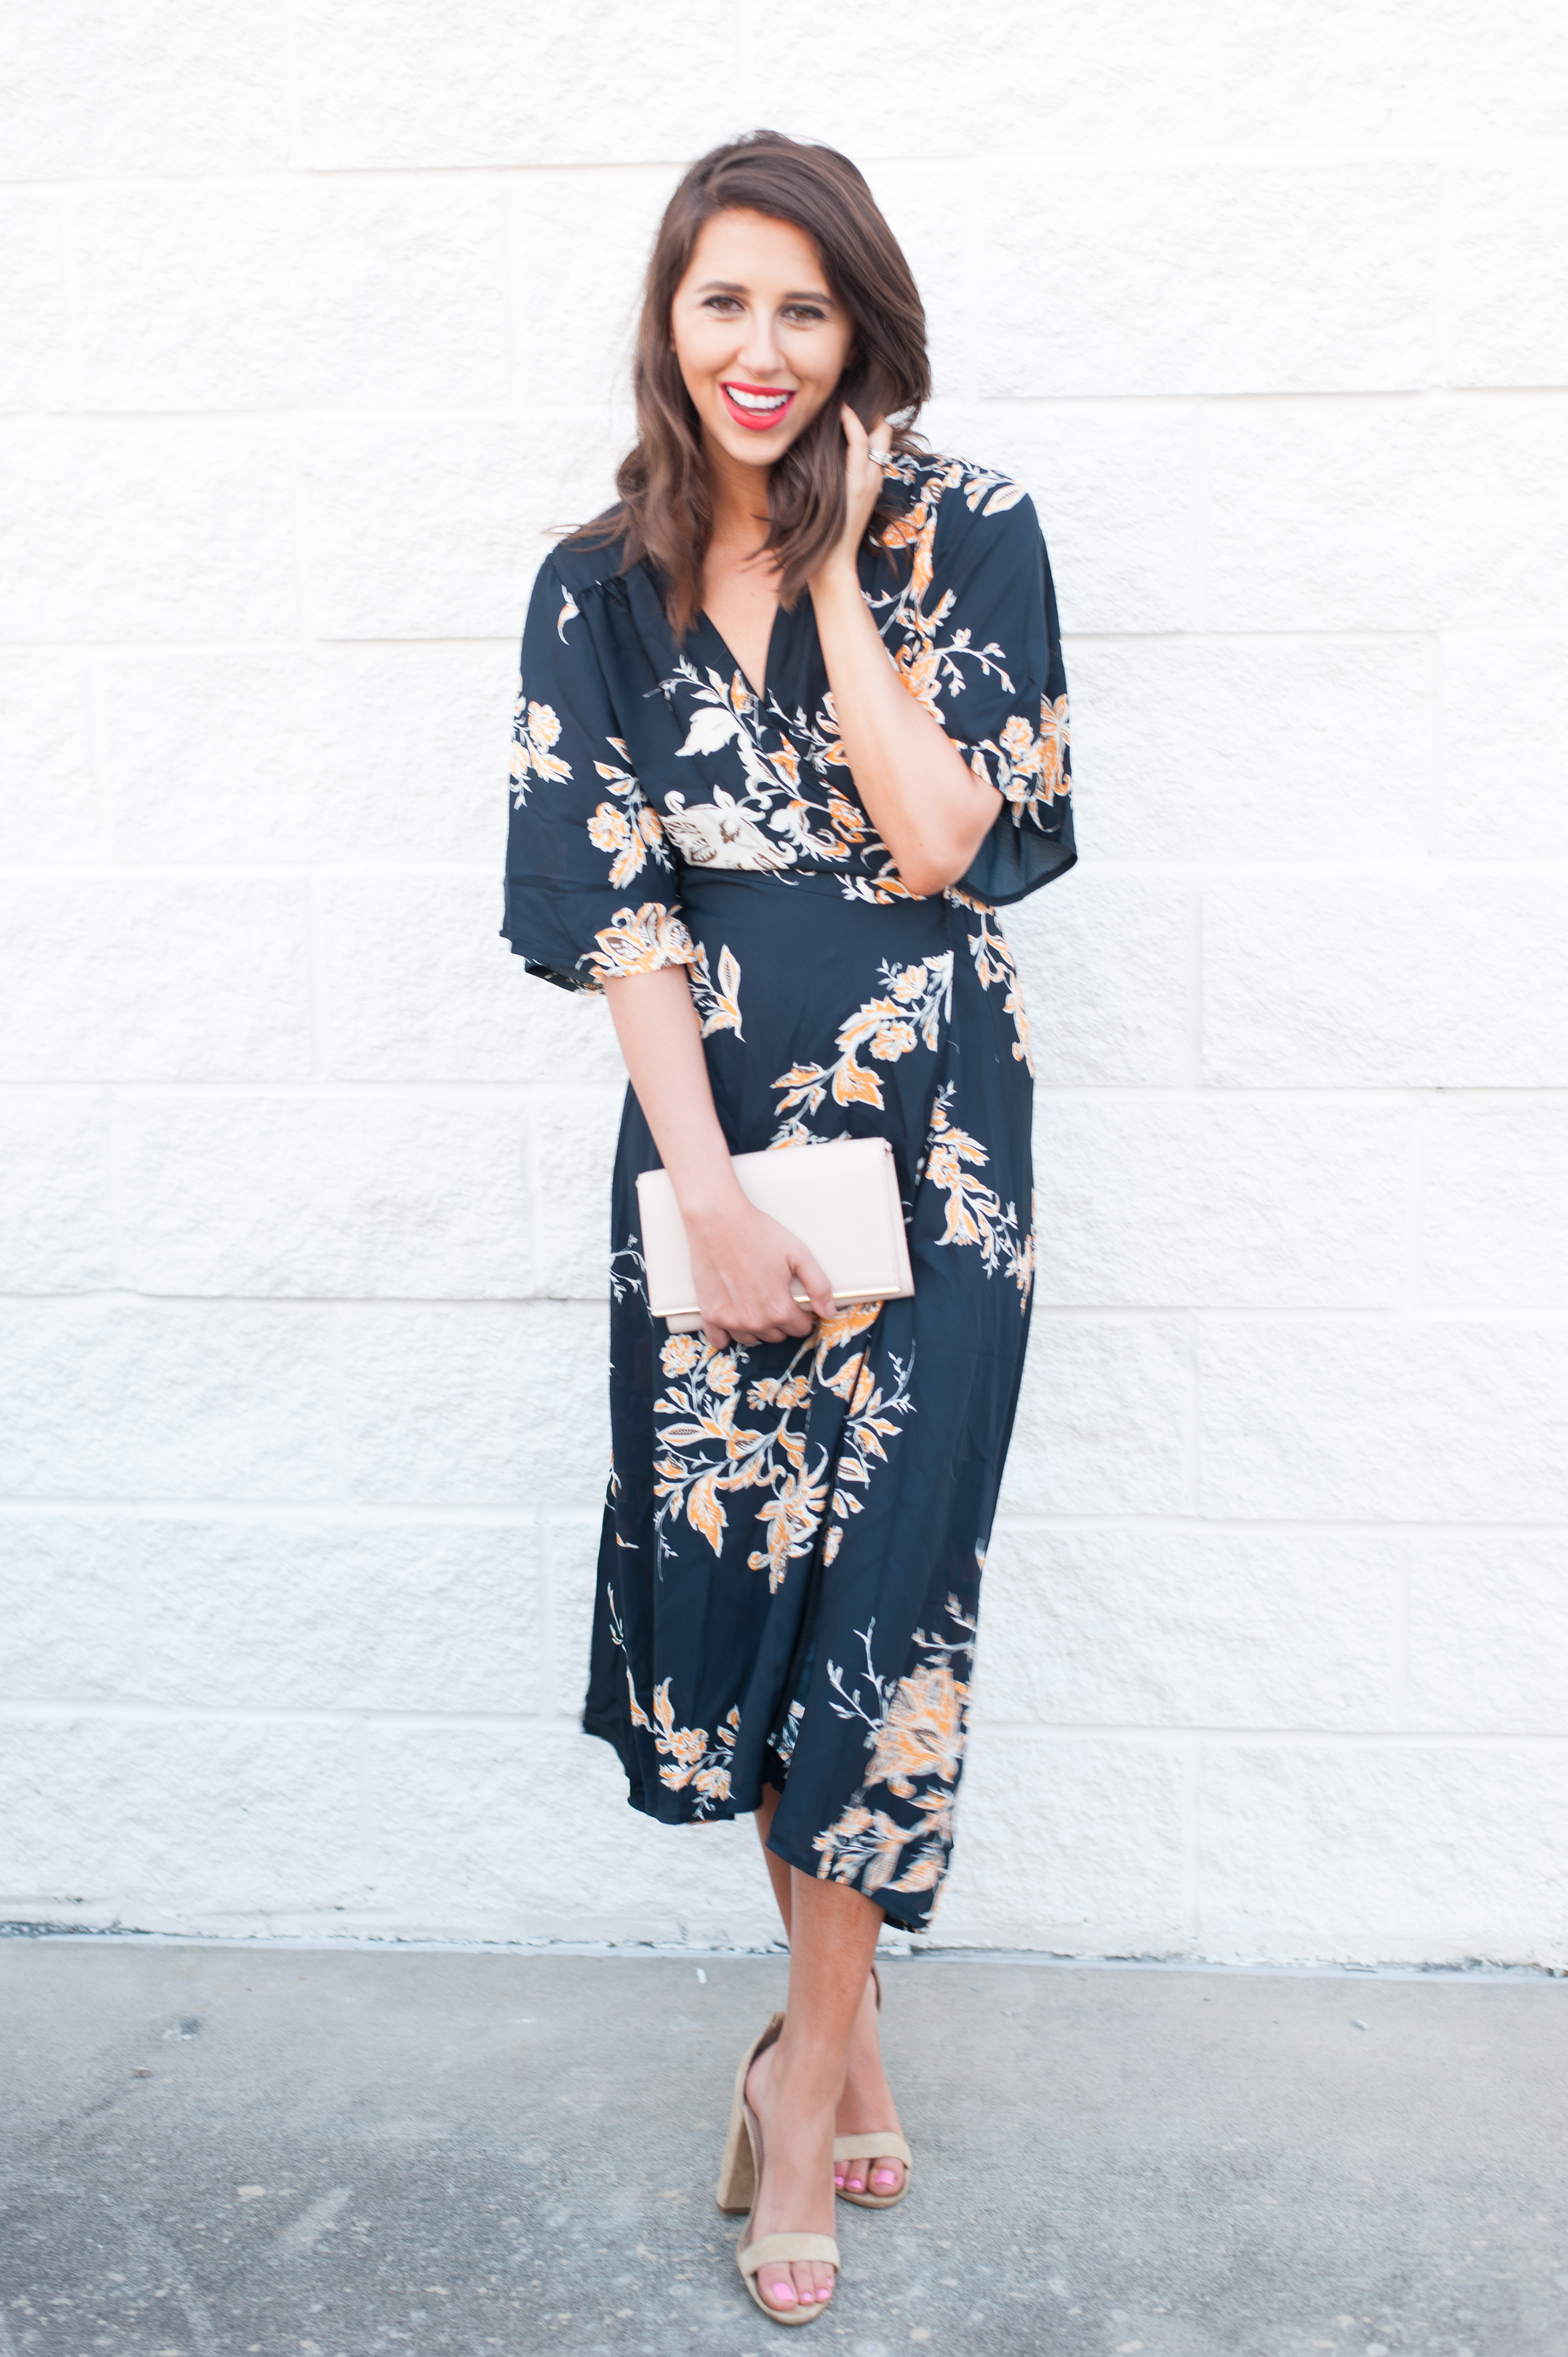 Dress Up Buttercup // A Houston-based fashion and inspiration blog developed to daily inspire your own personal style by Dede Raad | Wrap Floral Maxi